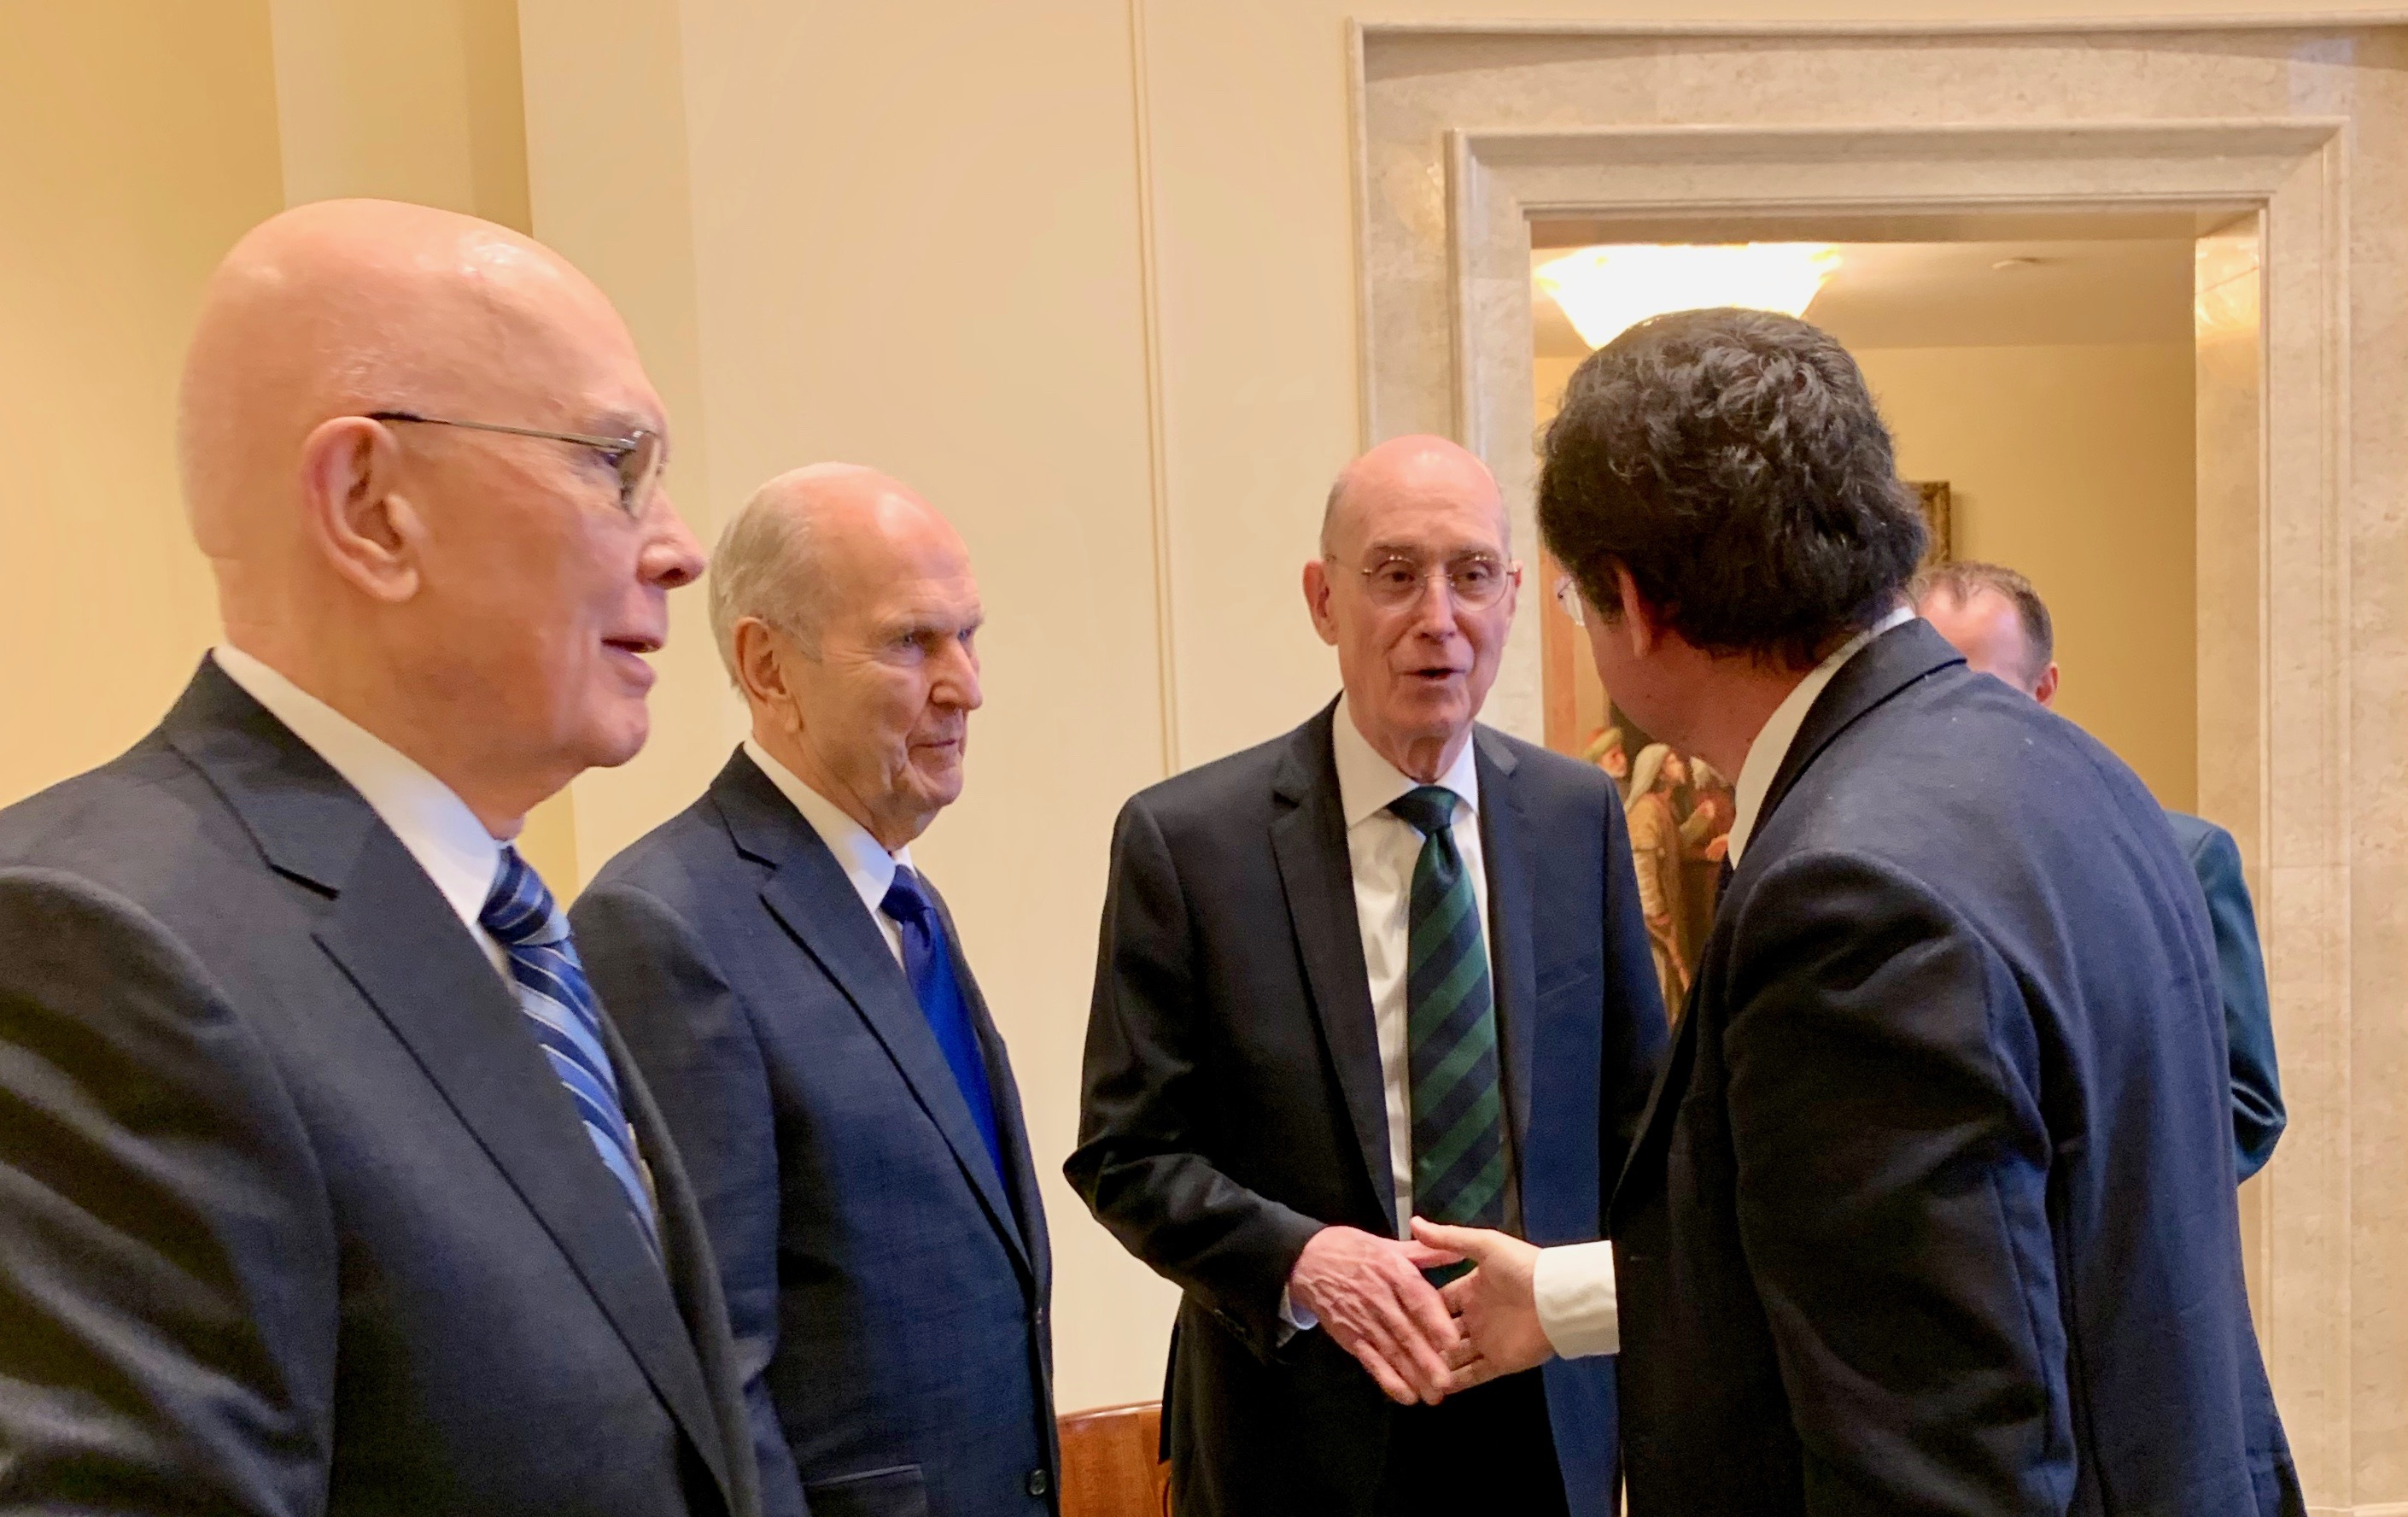 President Dallin H. Oaks, President Russell M. Nelson and President Henry B. Eyring shake hands with La Stampa correspondent Paolo Mastrolilli after the reporter interviewed the First Presidency of The Church of Jesus Christ of Latter-day Saints in the Rome Italy Temple on Monday, March 11, 2019.